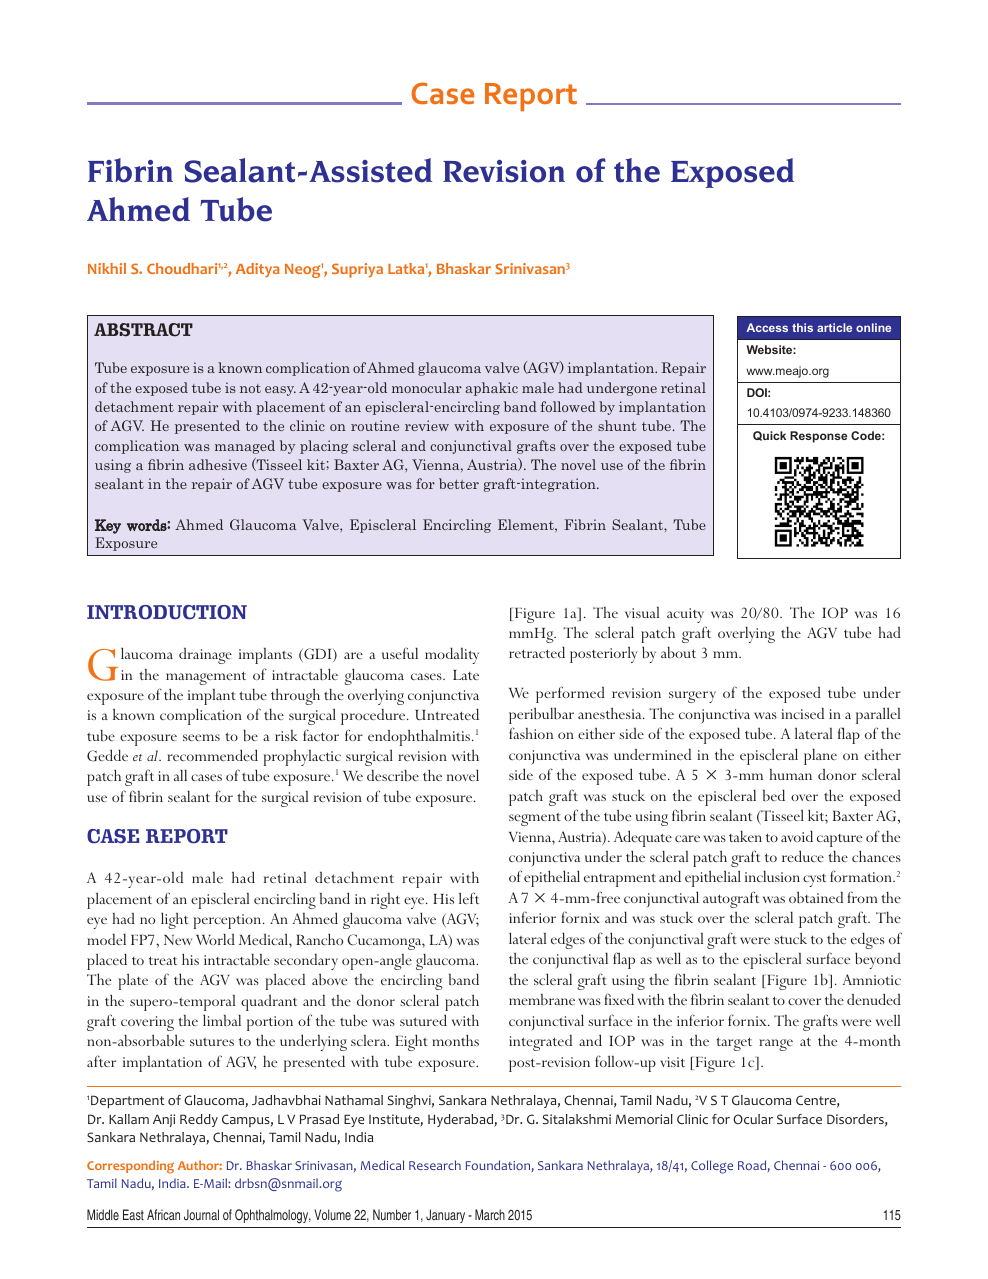 Fibrin sealant-assisted revision of the exposed Ahmed tube